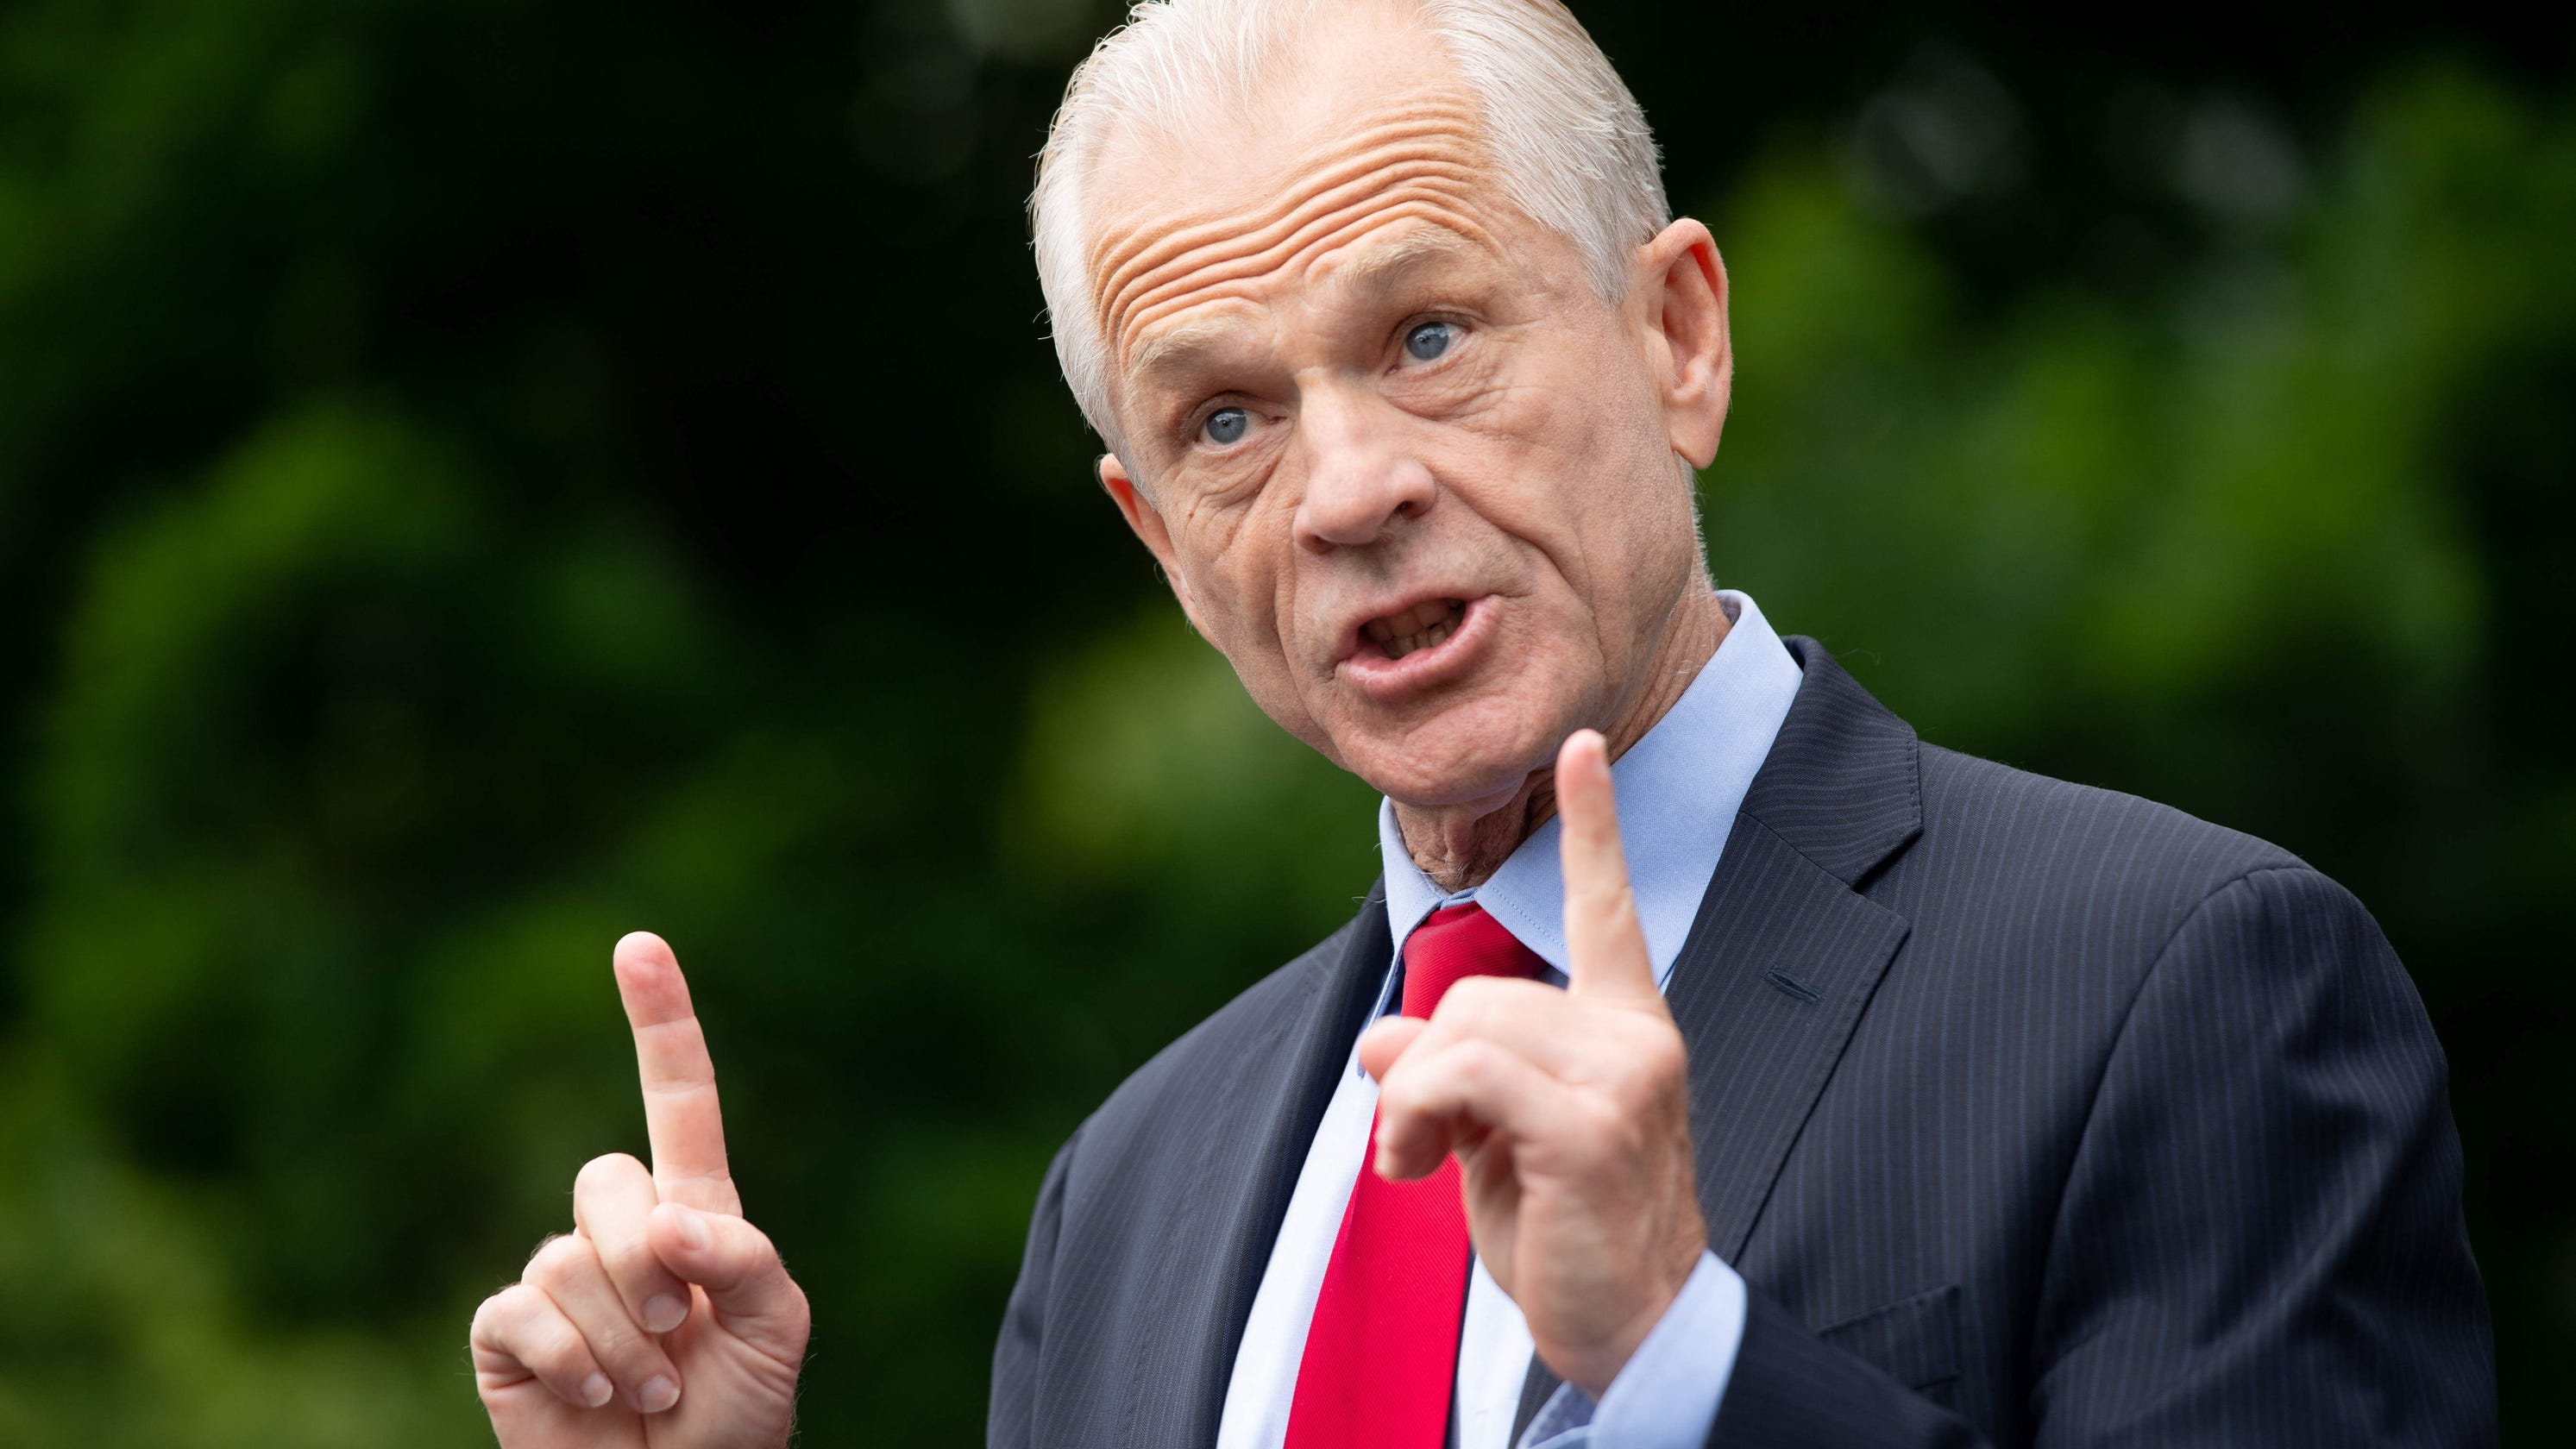 Anthony Fauci has been wrong about everything I have interacted with him on: Peter Navarro